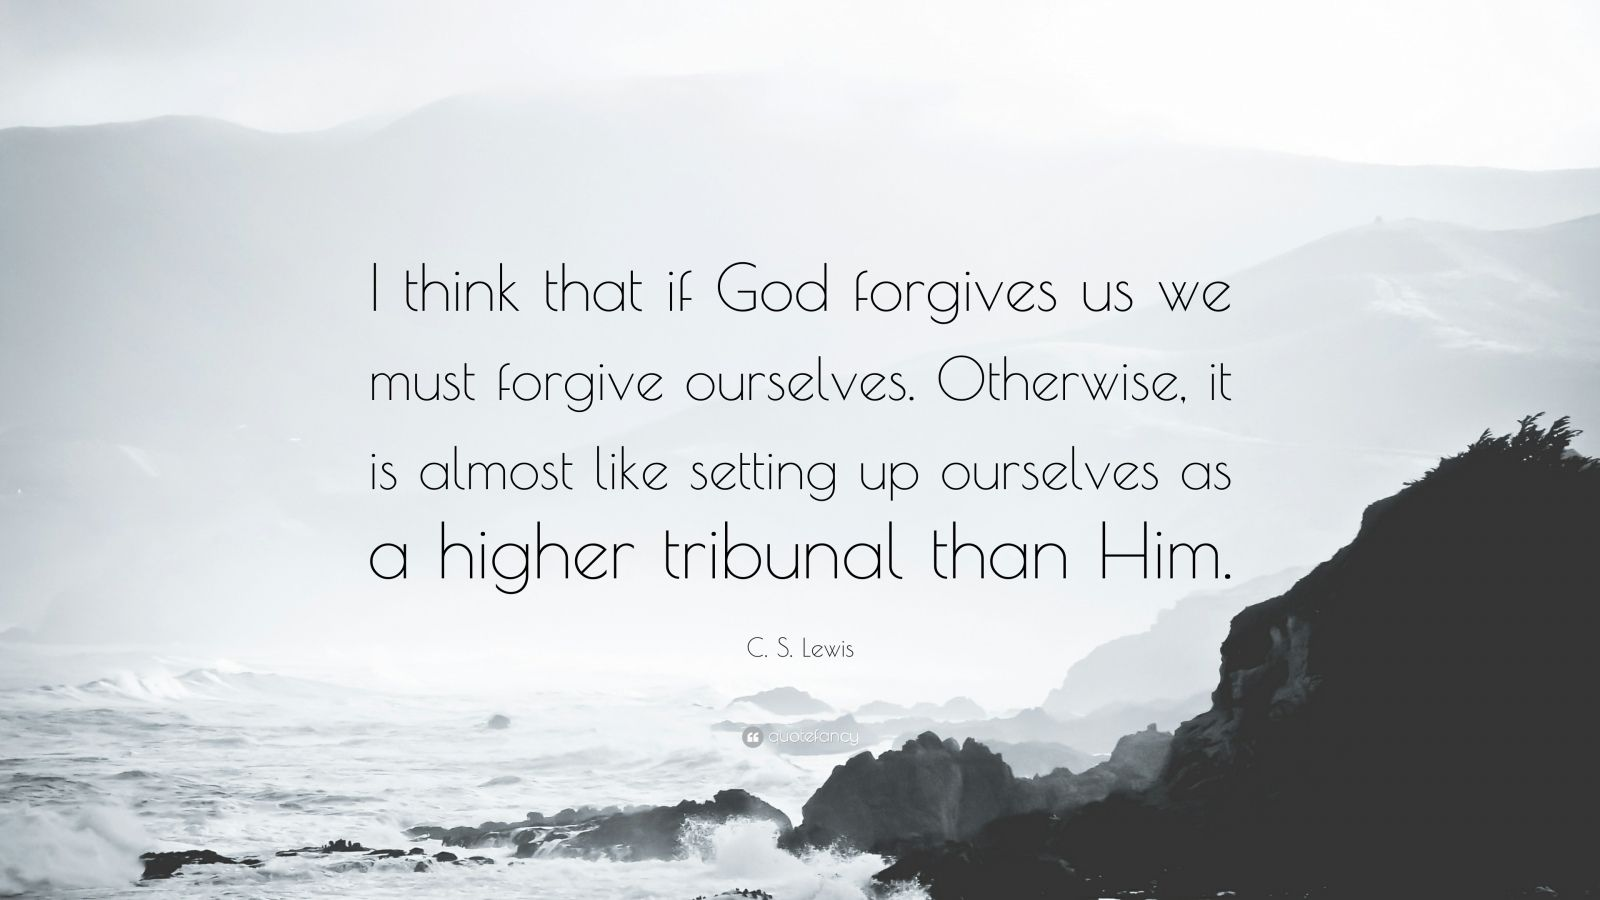 """C. S. Lewis Quote: """"I think that if God forgives us we must forgive ourselves. Otherwise, it is almost like setting up ourselves as a higher tribunal than Him."""""""